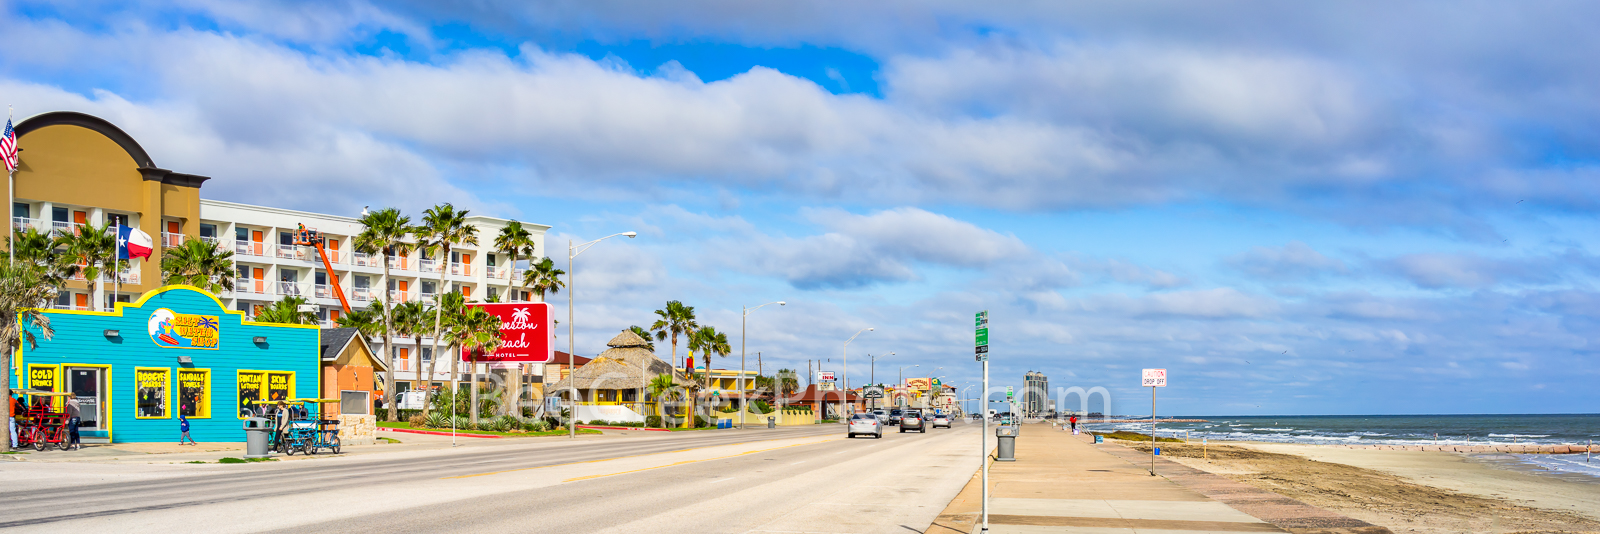 Galveston Seawall Pano - Galveston Island is known for it sea wall that run down a long section of the beach which we captured...